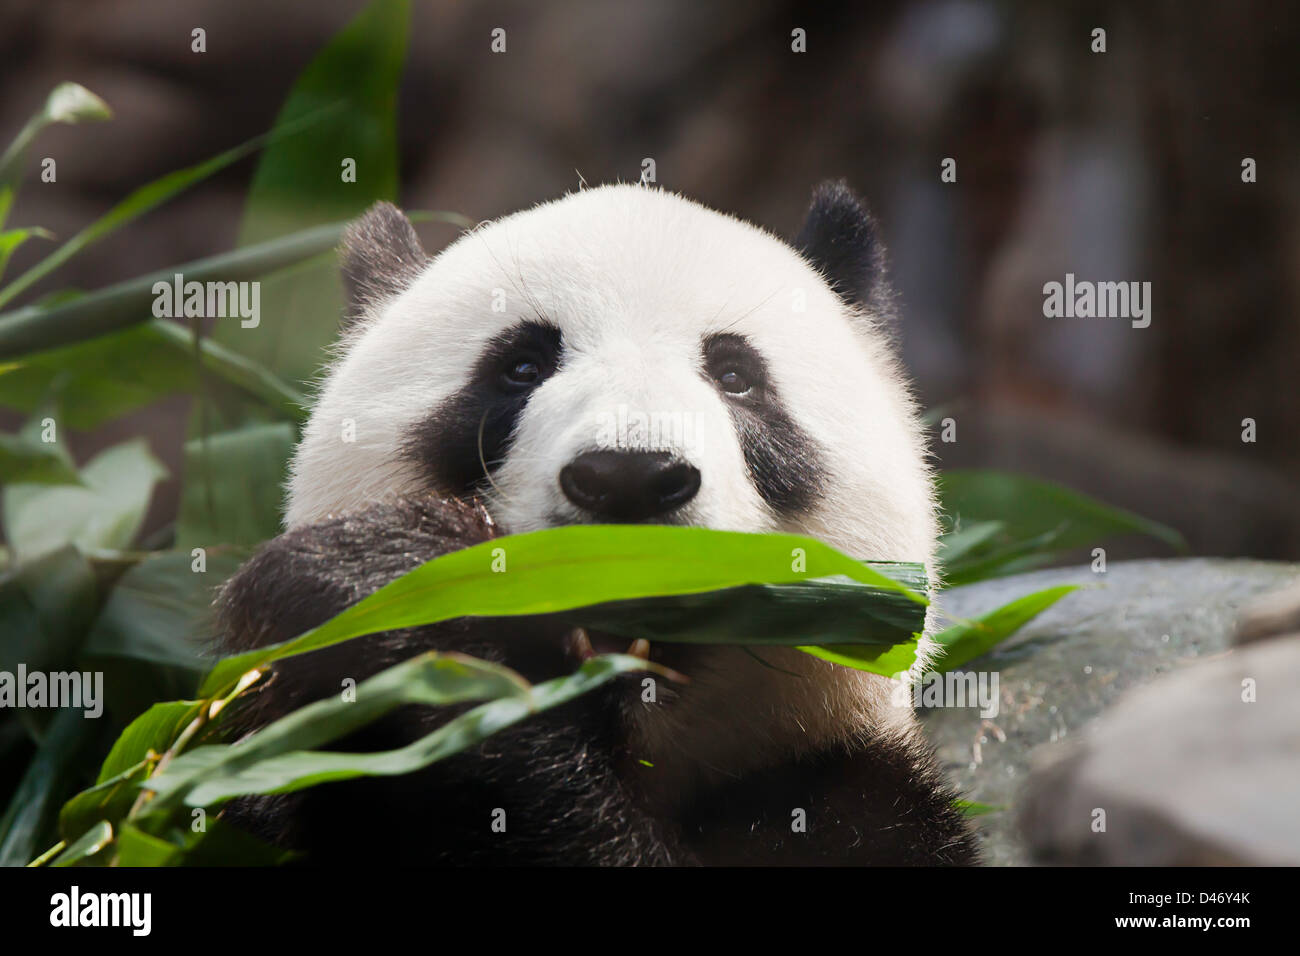 The Giant Panda, Ailuropoda melanoleuca, is a bear native to central-western and south western China. - Stock Image